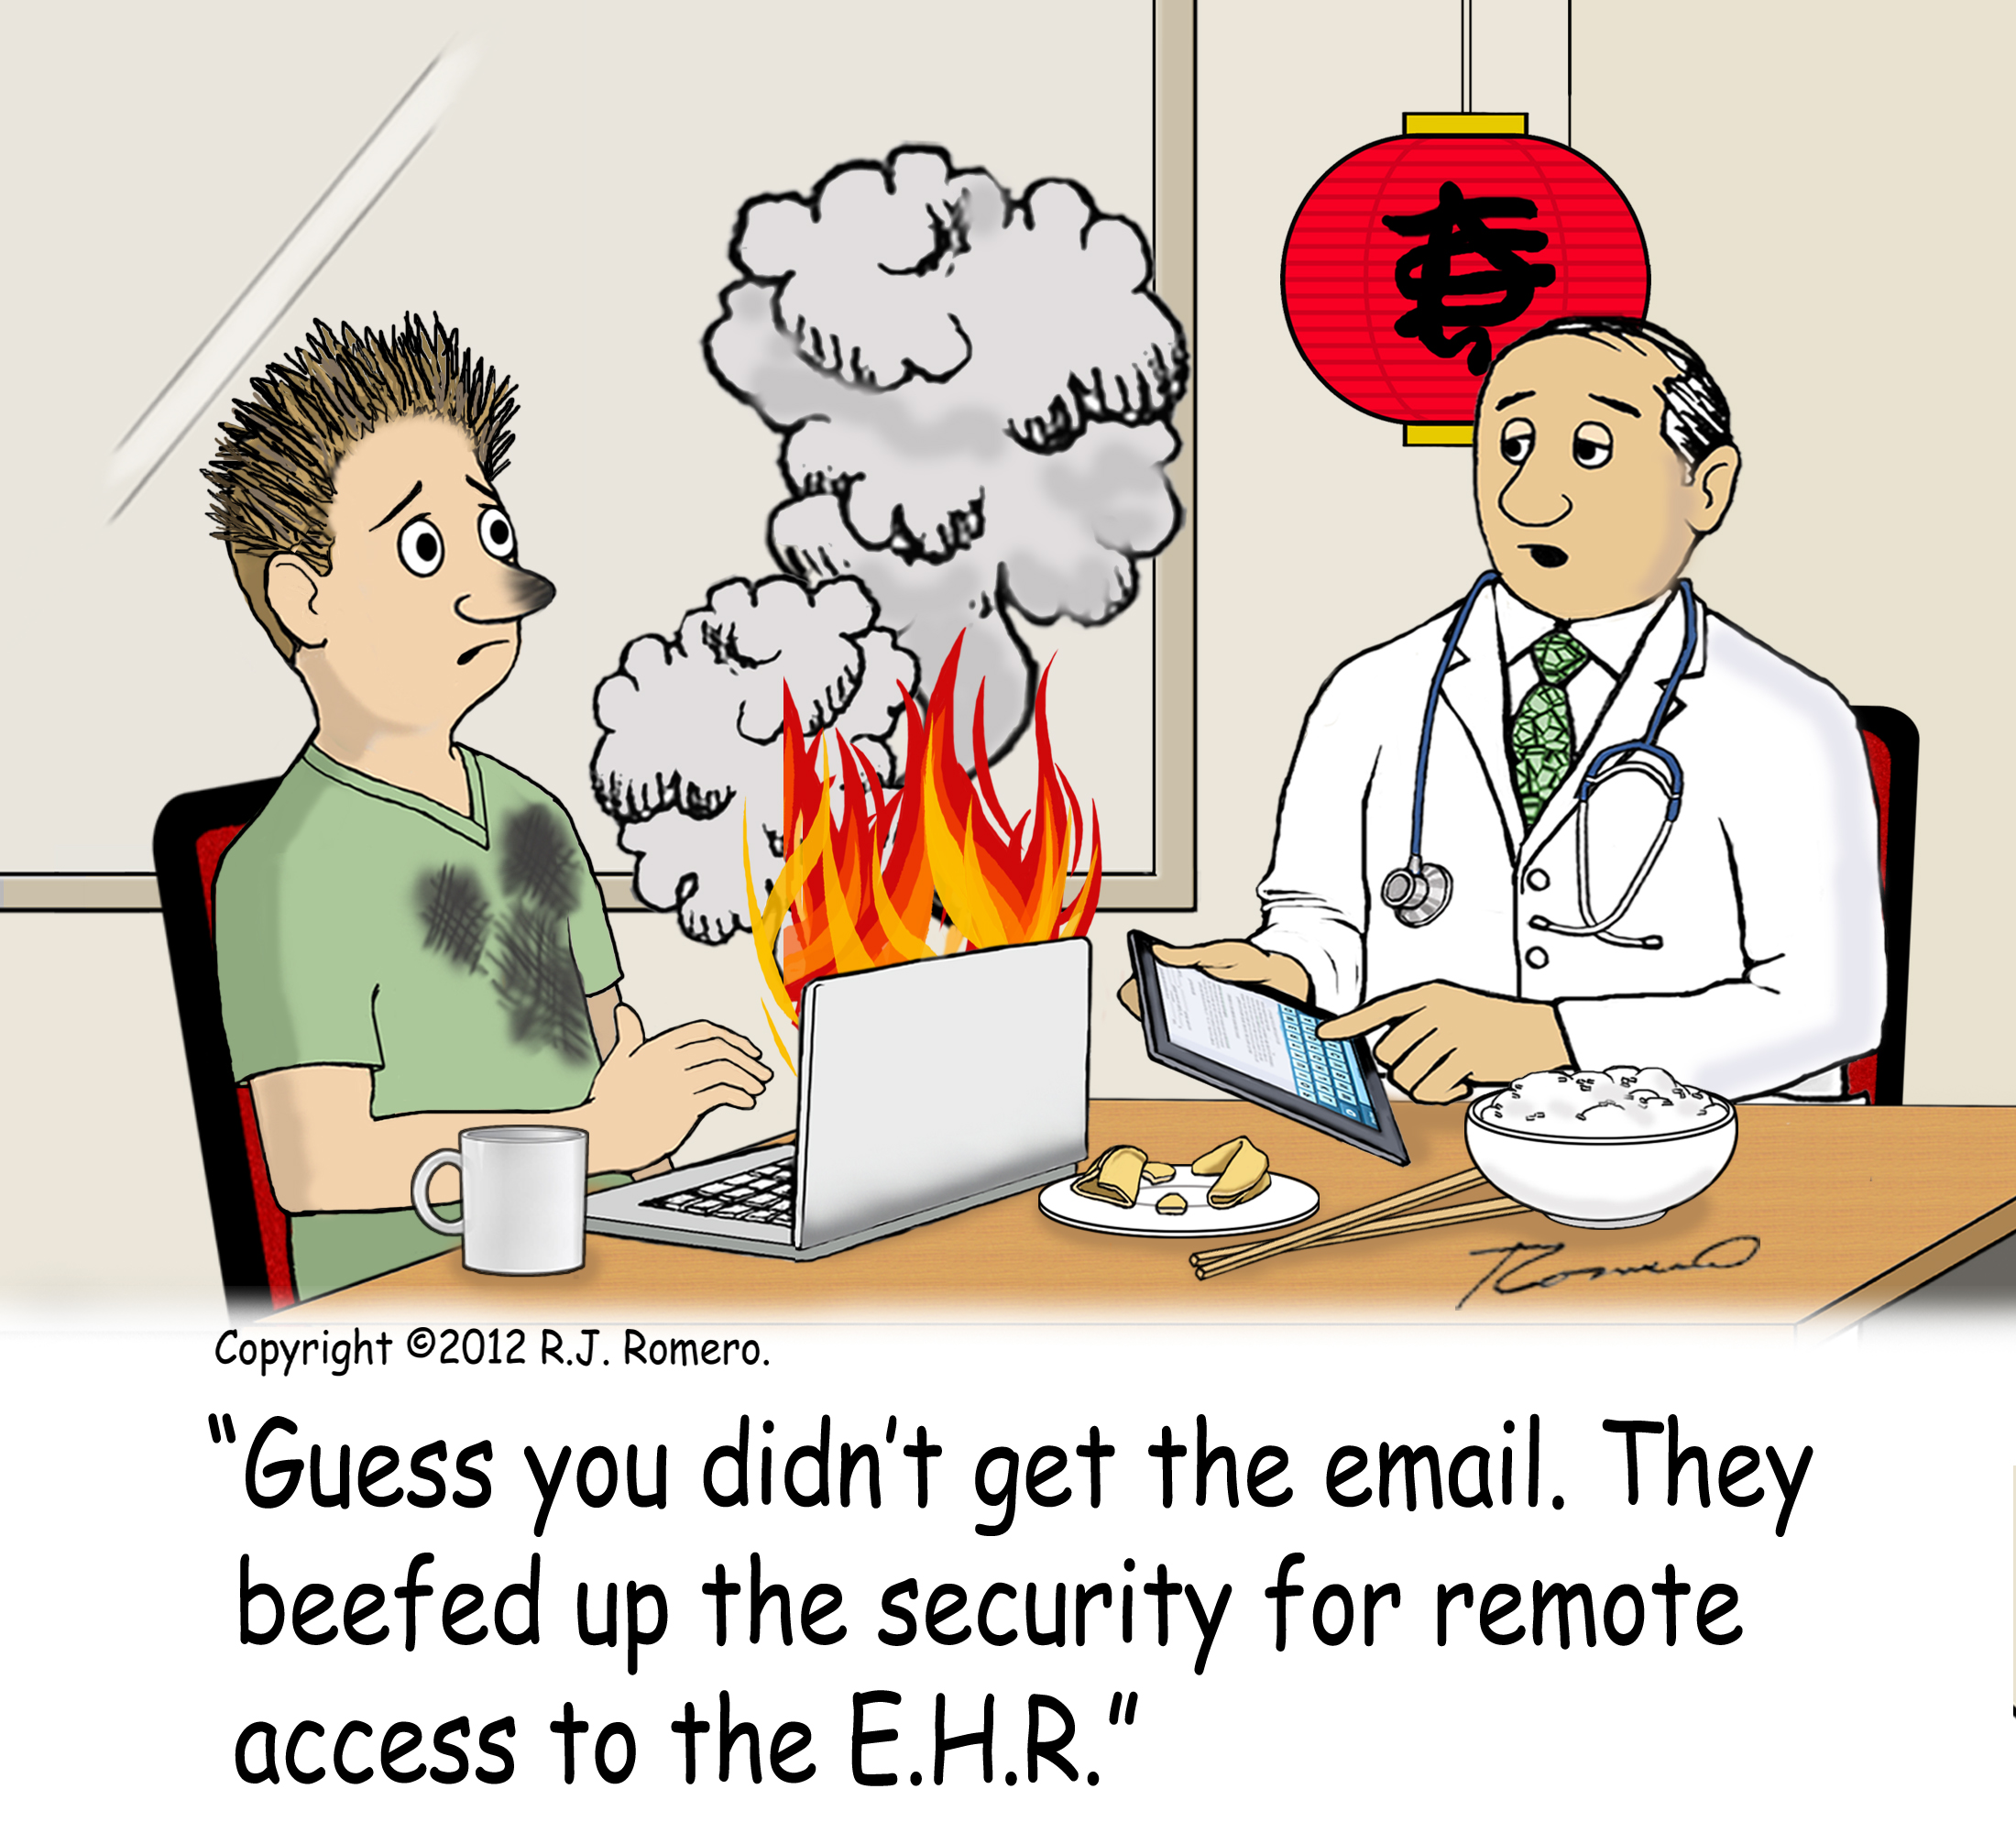 secure access to EHR